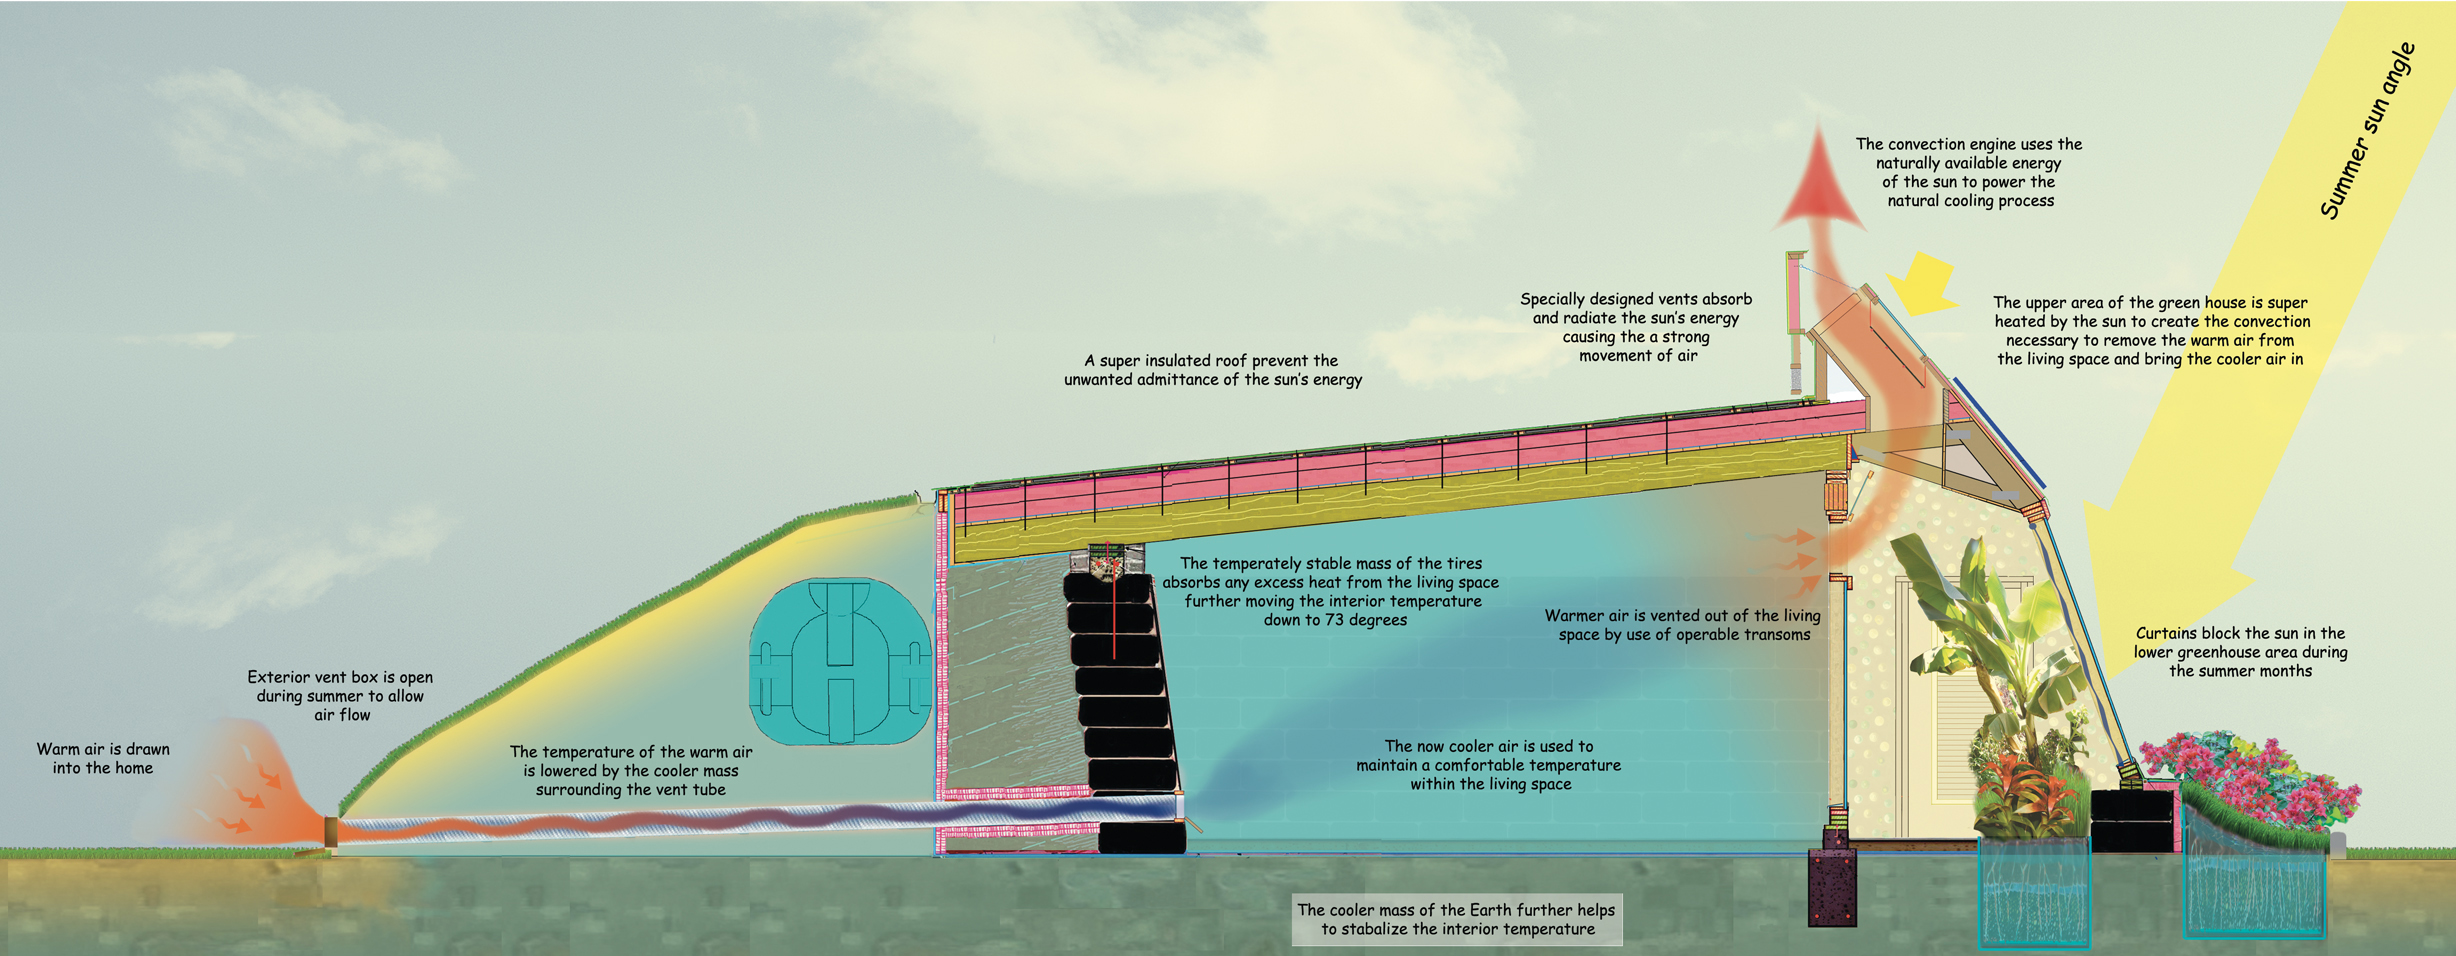 The Future of Living: Earthships and Tiny Homes on straw bale garage plans, brick garage plans, wood garage plans, earthbag garage plans, solar garage plans, adobe garage plans, green garage plans, construction garage plans, cordwood garage plans, geodesic dome garage plans, stone garage plans, concrete garage plans,